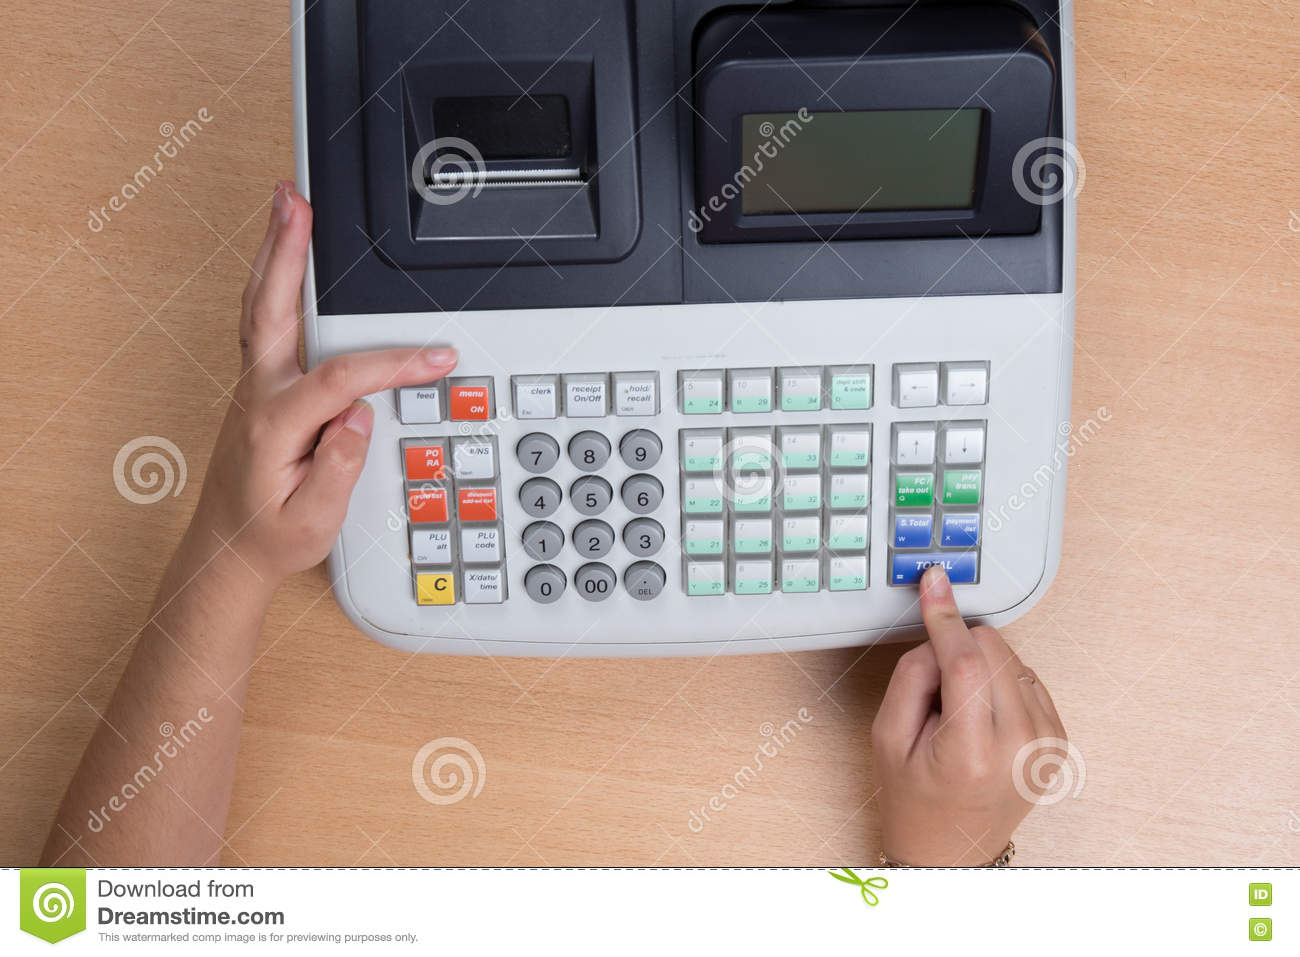 hand swiping credit card in a store with cash register - Credit Card Printer